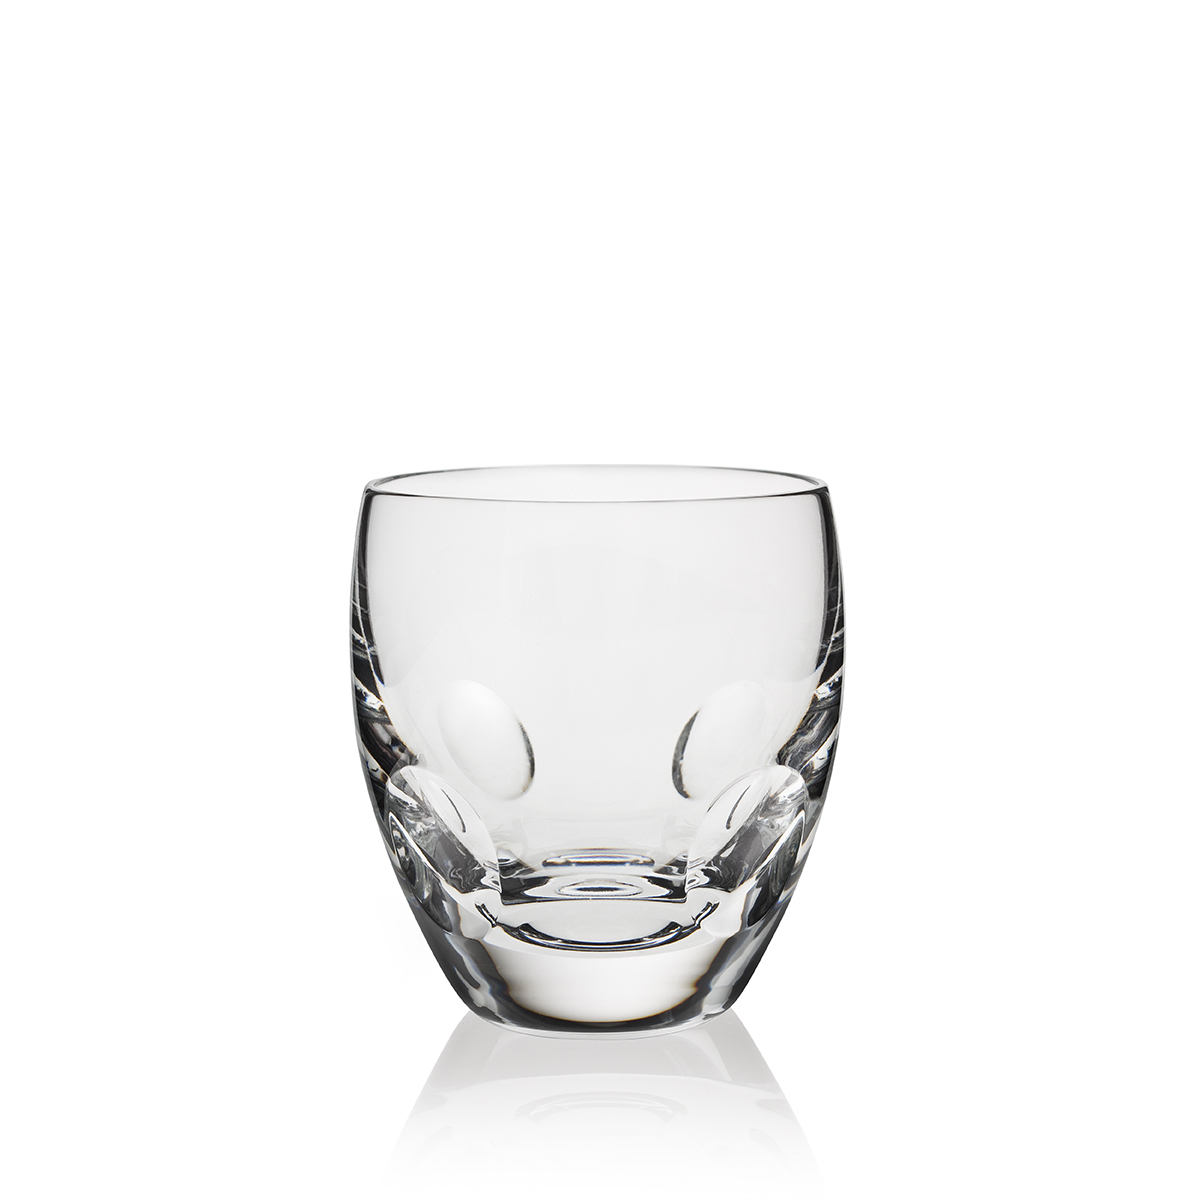 Steuben Verve DOF Glass, Single